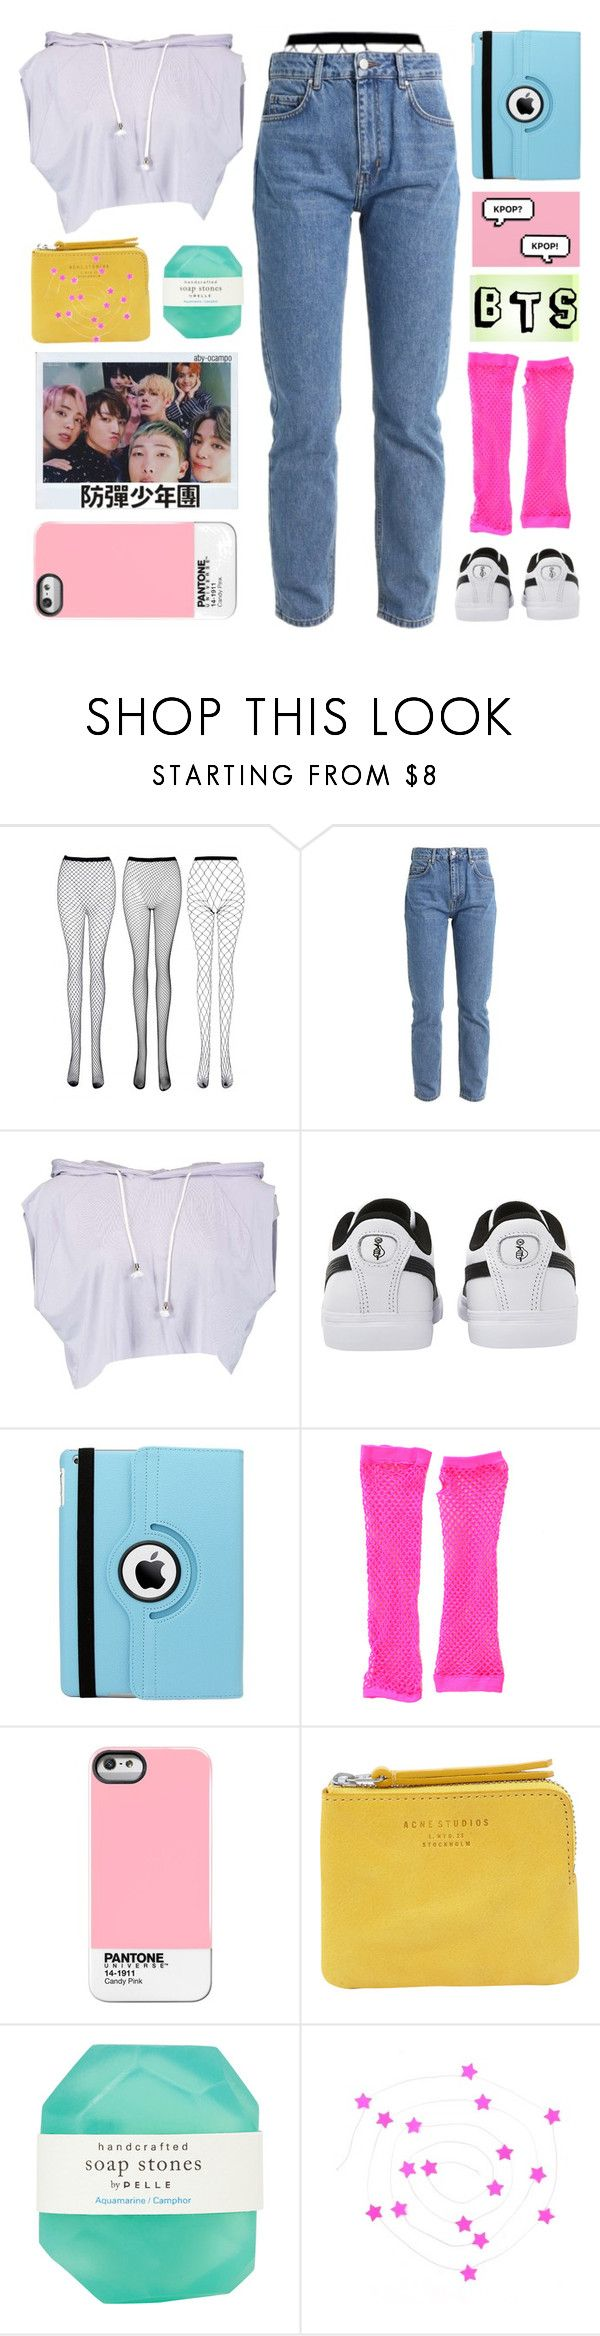 """""""RTD please :)"""" by aby-ocampo ❤ liked on Polyvore featuring Hot Topic, Pantone Universe, Acne Studios and Pelle"""